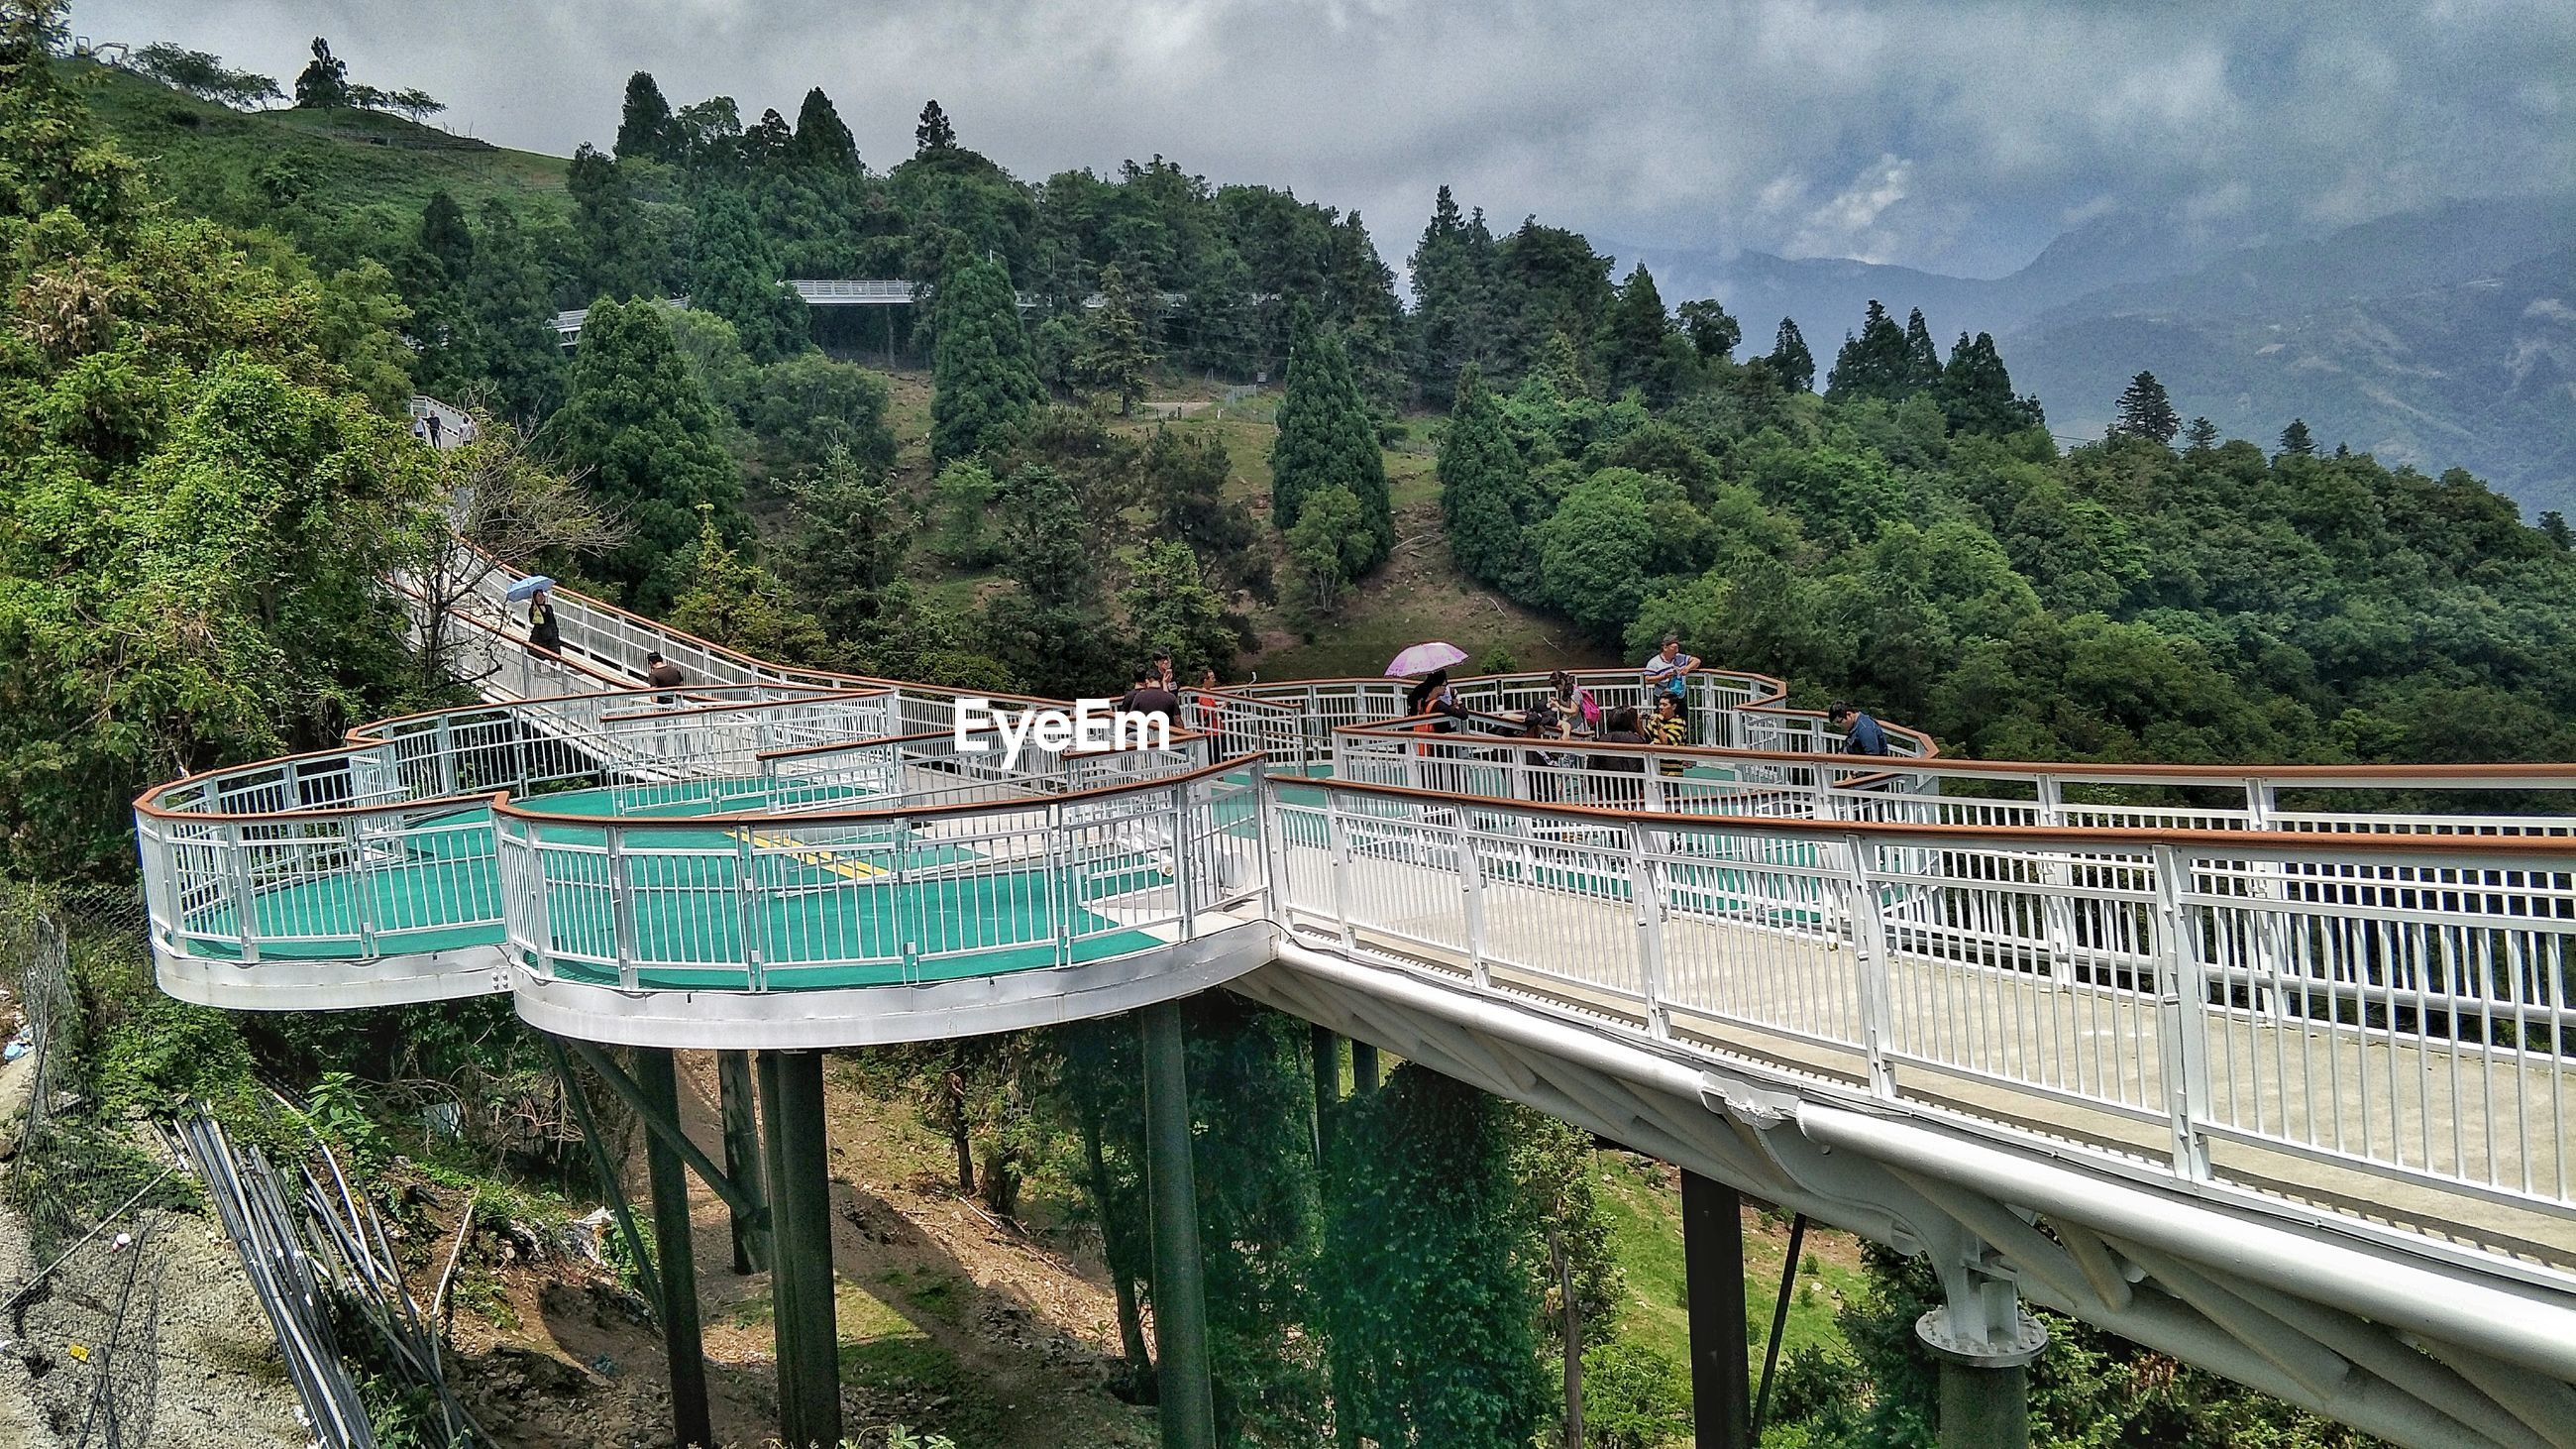 PANORAMIC VIEW OF BRIDGE OVER MOUNTAINS AGAINST SKY